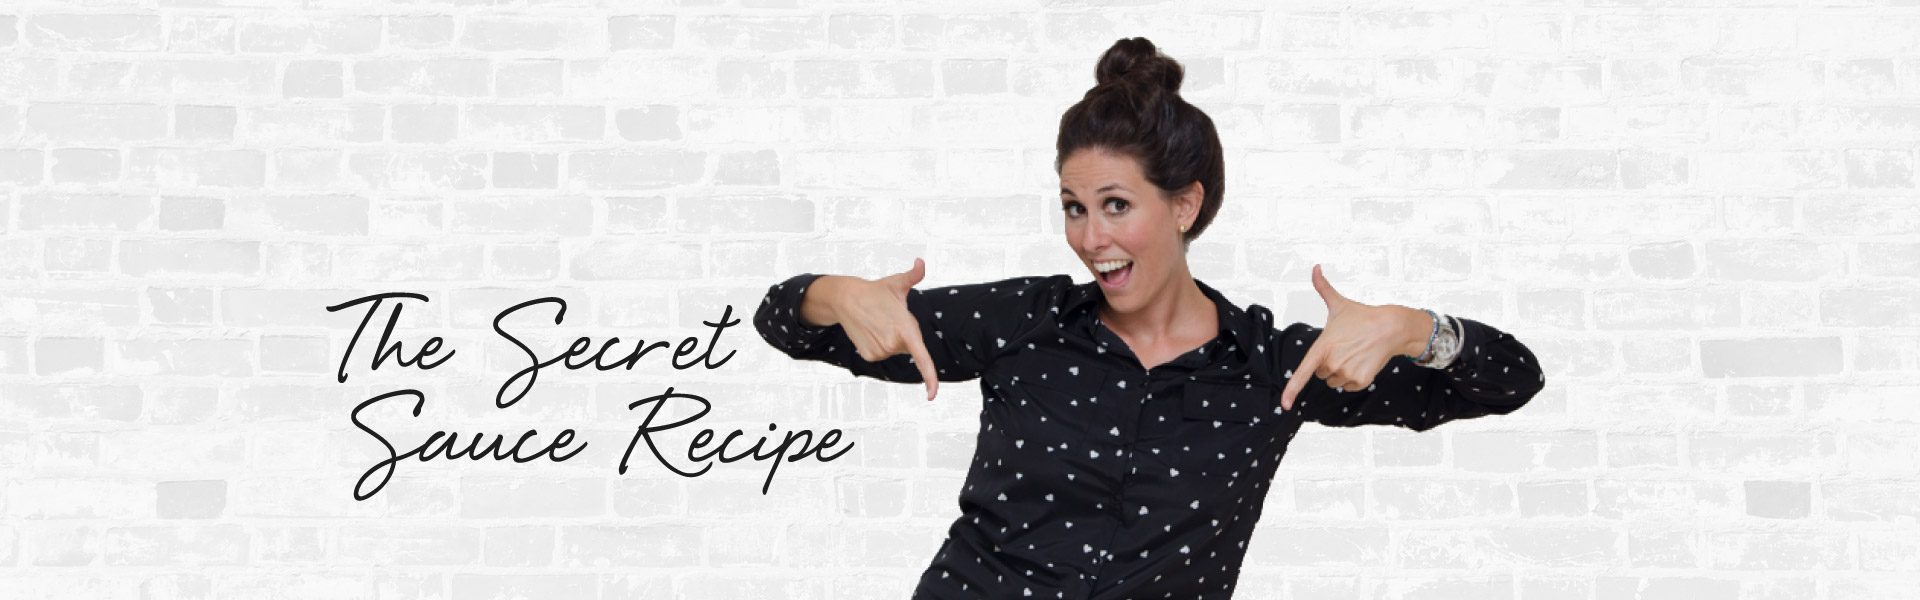 secret sauce recipe health elyse wagner